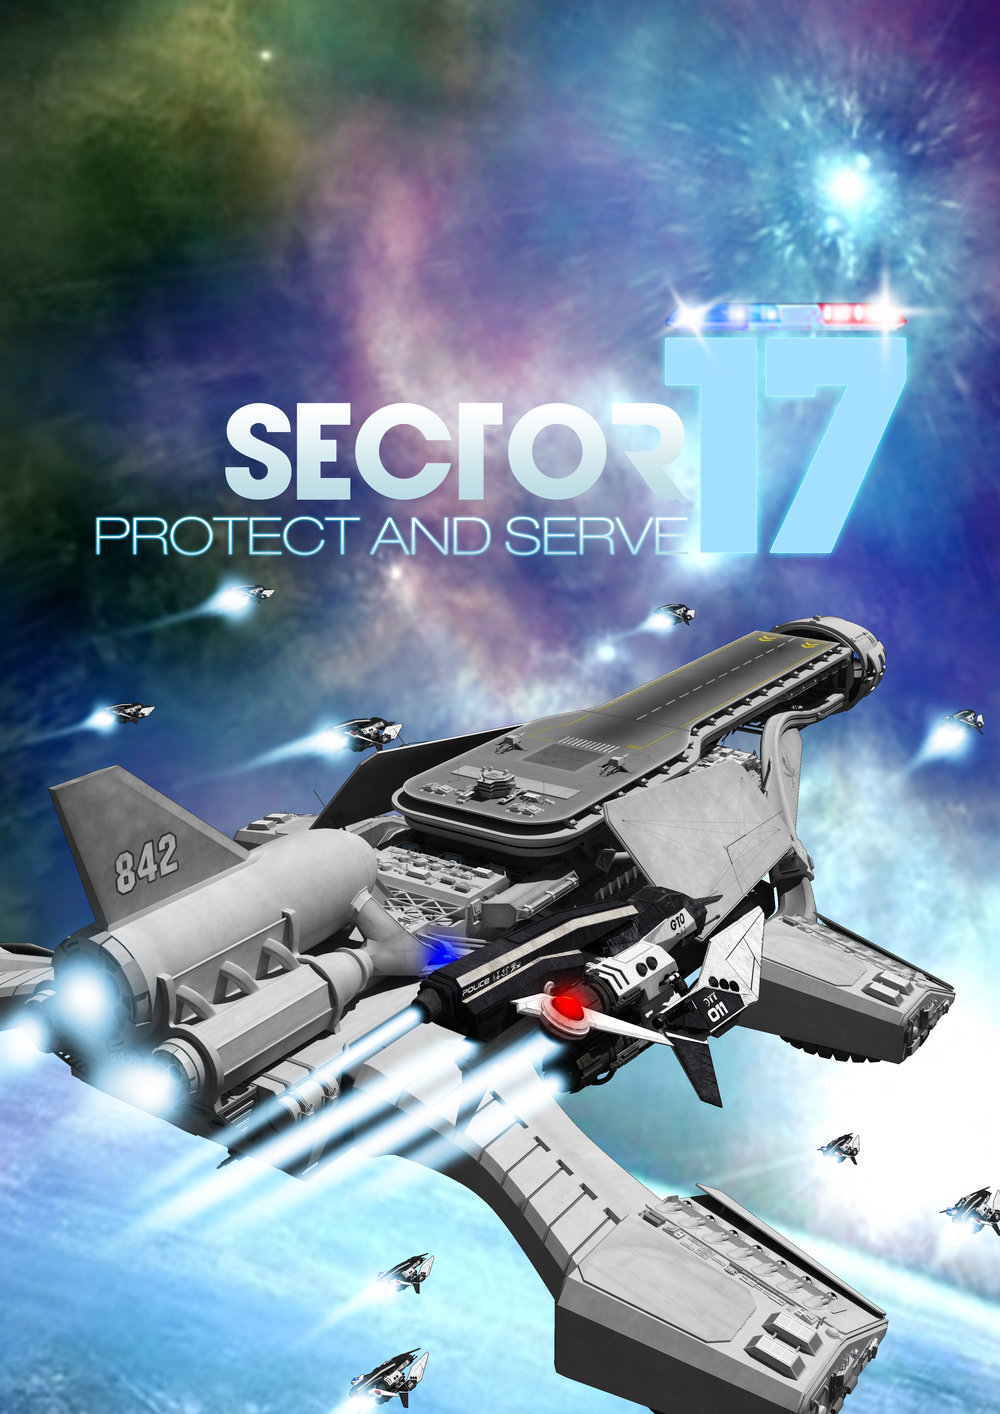 Sector 17